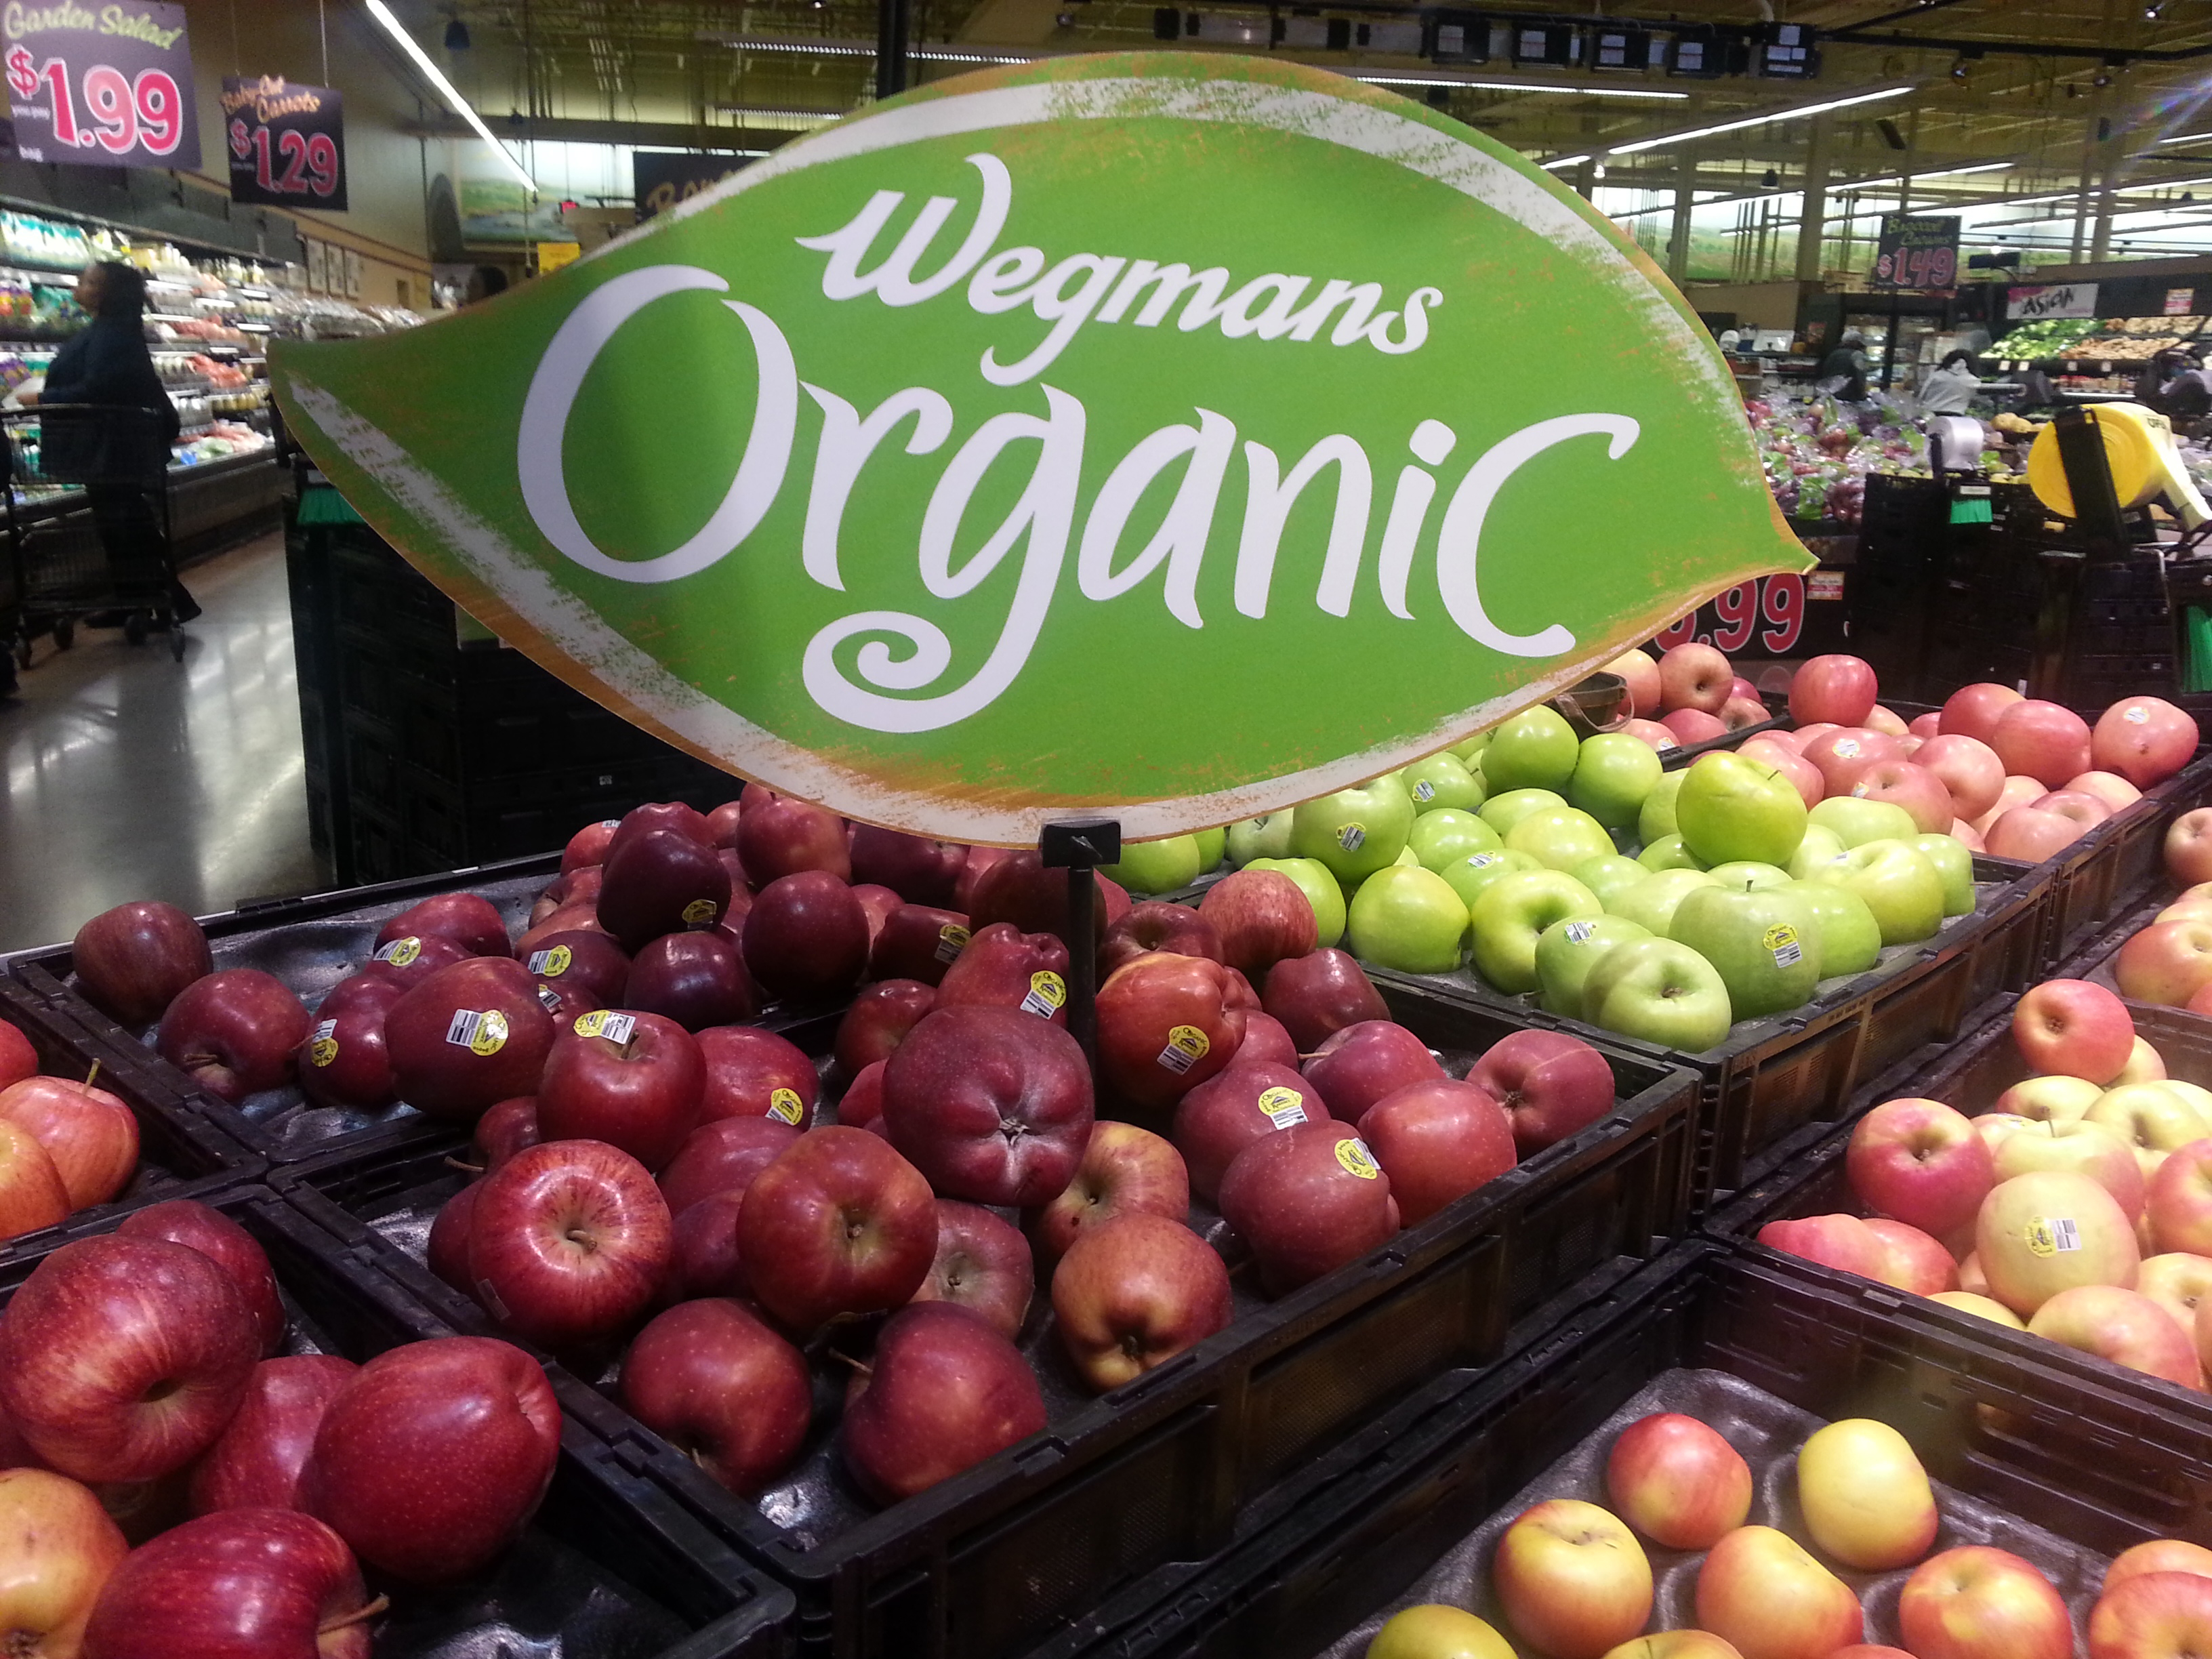 Wegmans top-ranked grocery in Consumer Reports survey